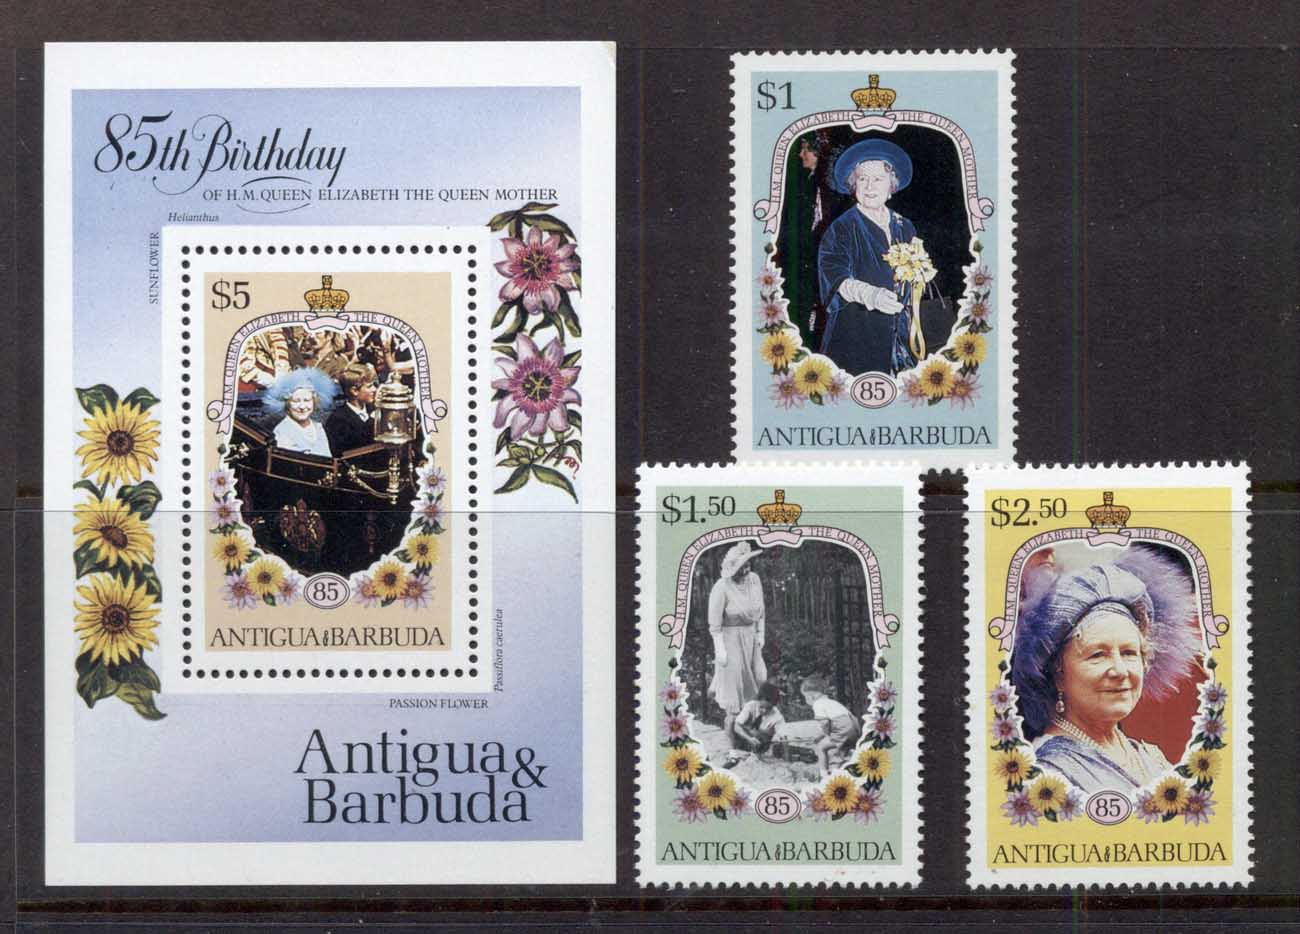 Antigua & Barbuda 1985 Queen Mother 85th Birthday + MS MUH